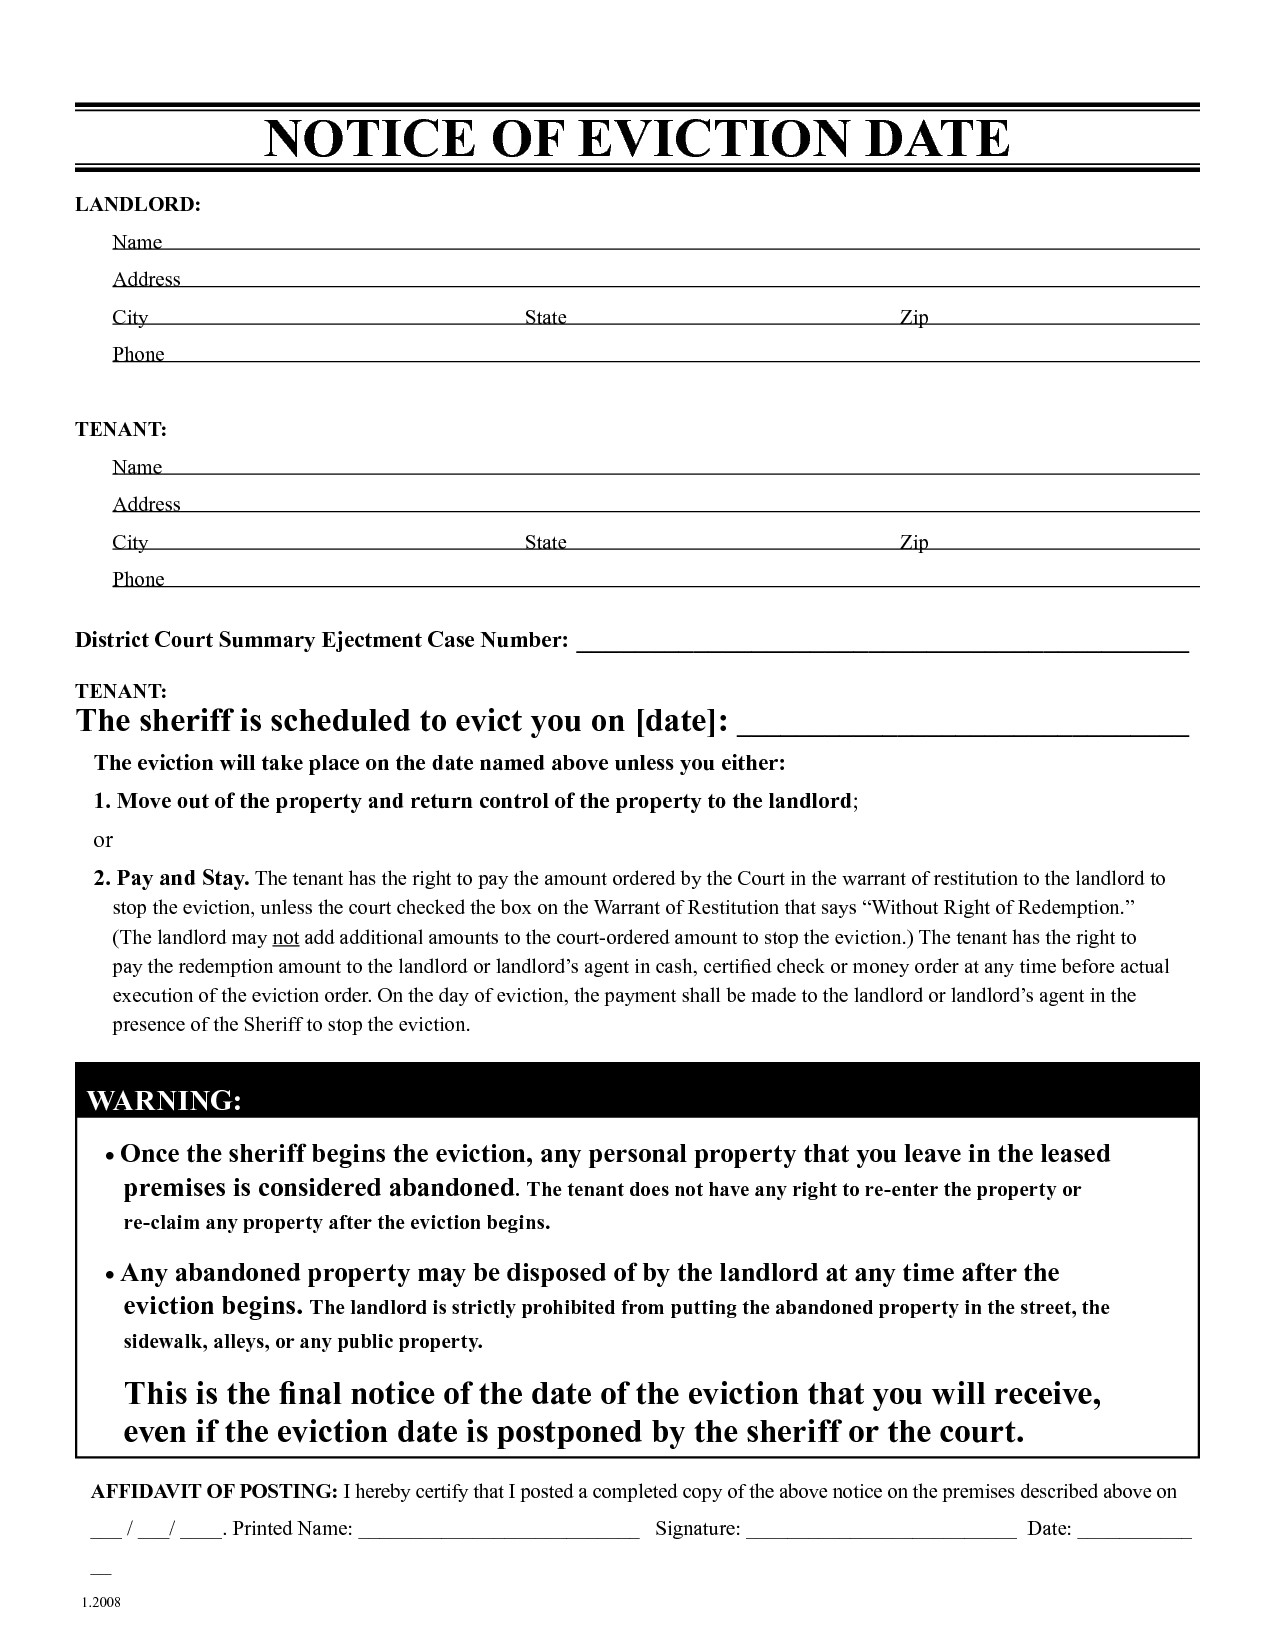 Eviction Warning Letter Template - Free Eviction Notice form Best Notice Meeting Template Beautiful